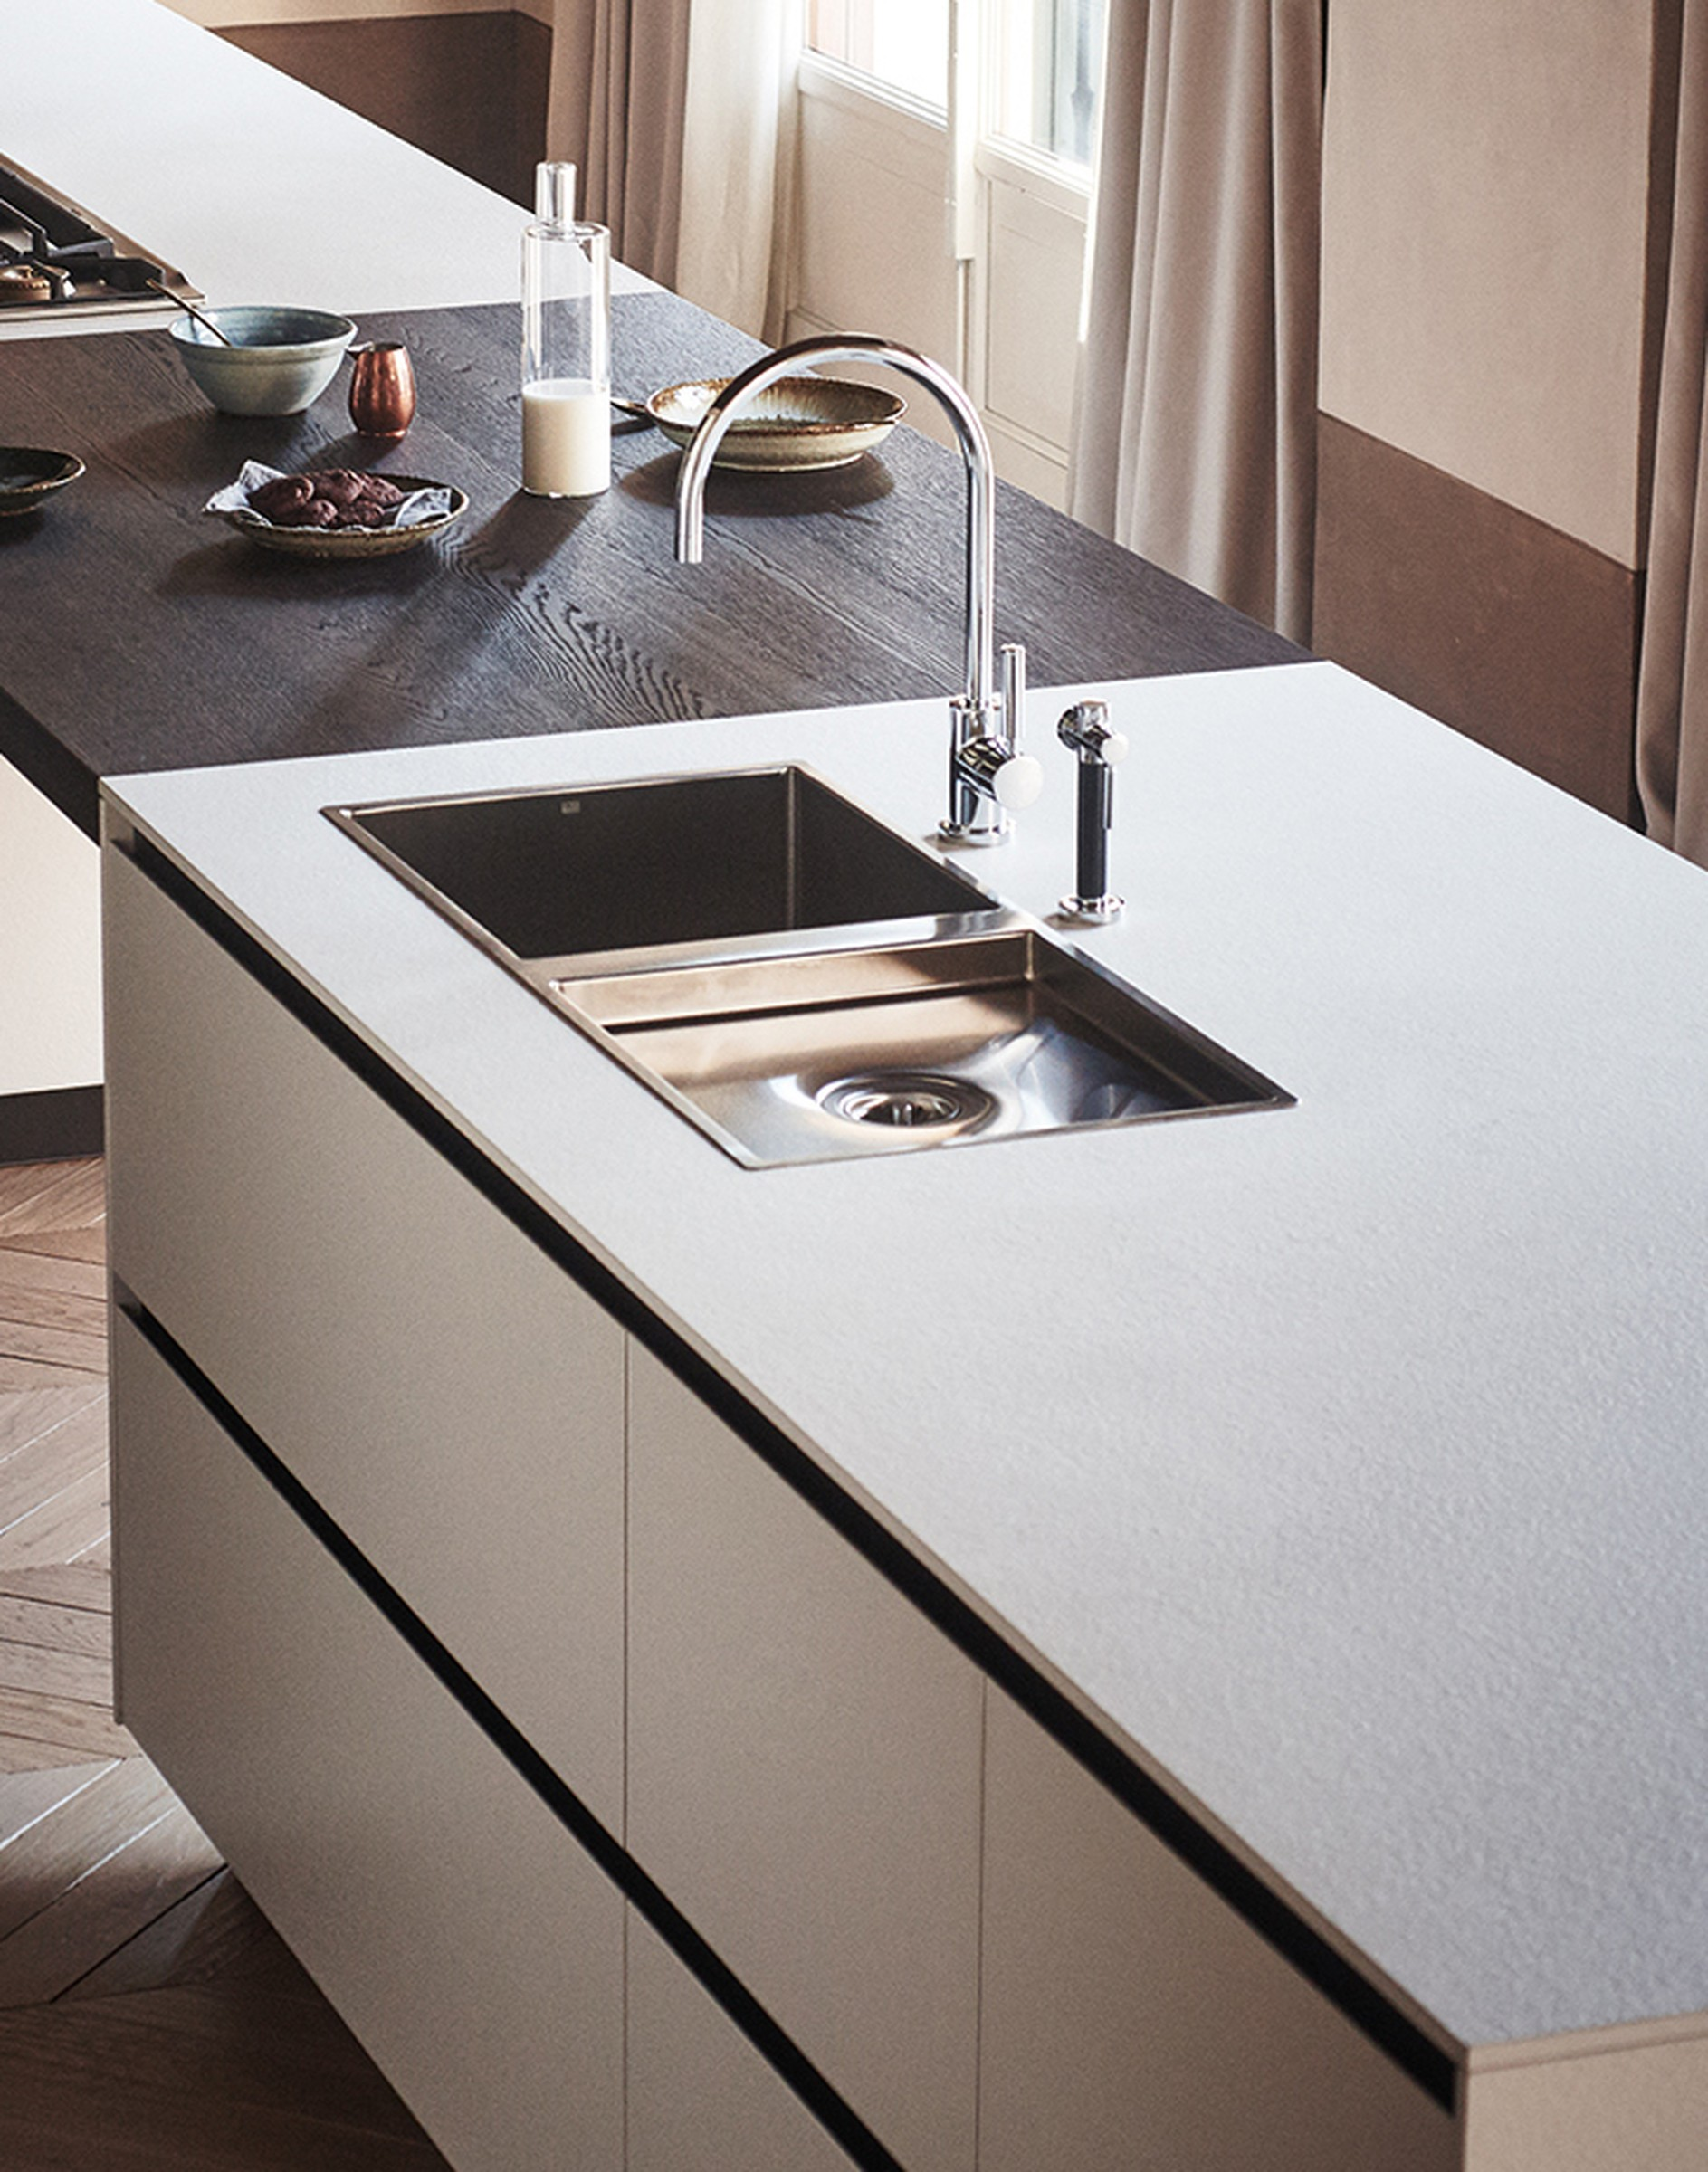 Cesar Countertop Cesar Kitchen Sinks Cesar Nyc Kitchens High End Kitchen Showroom